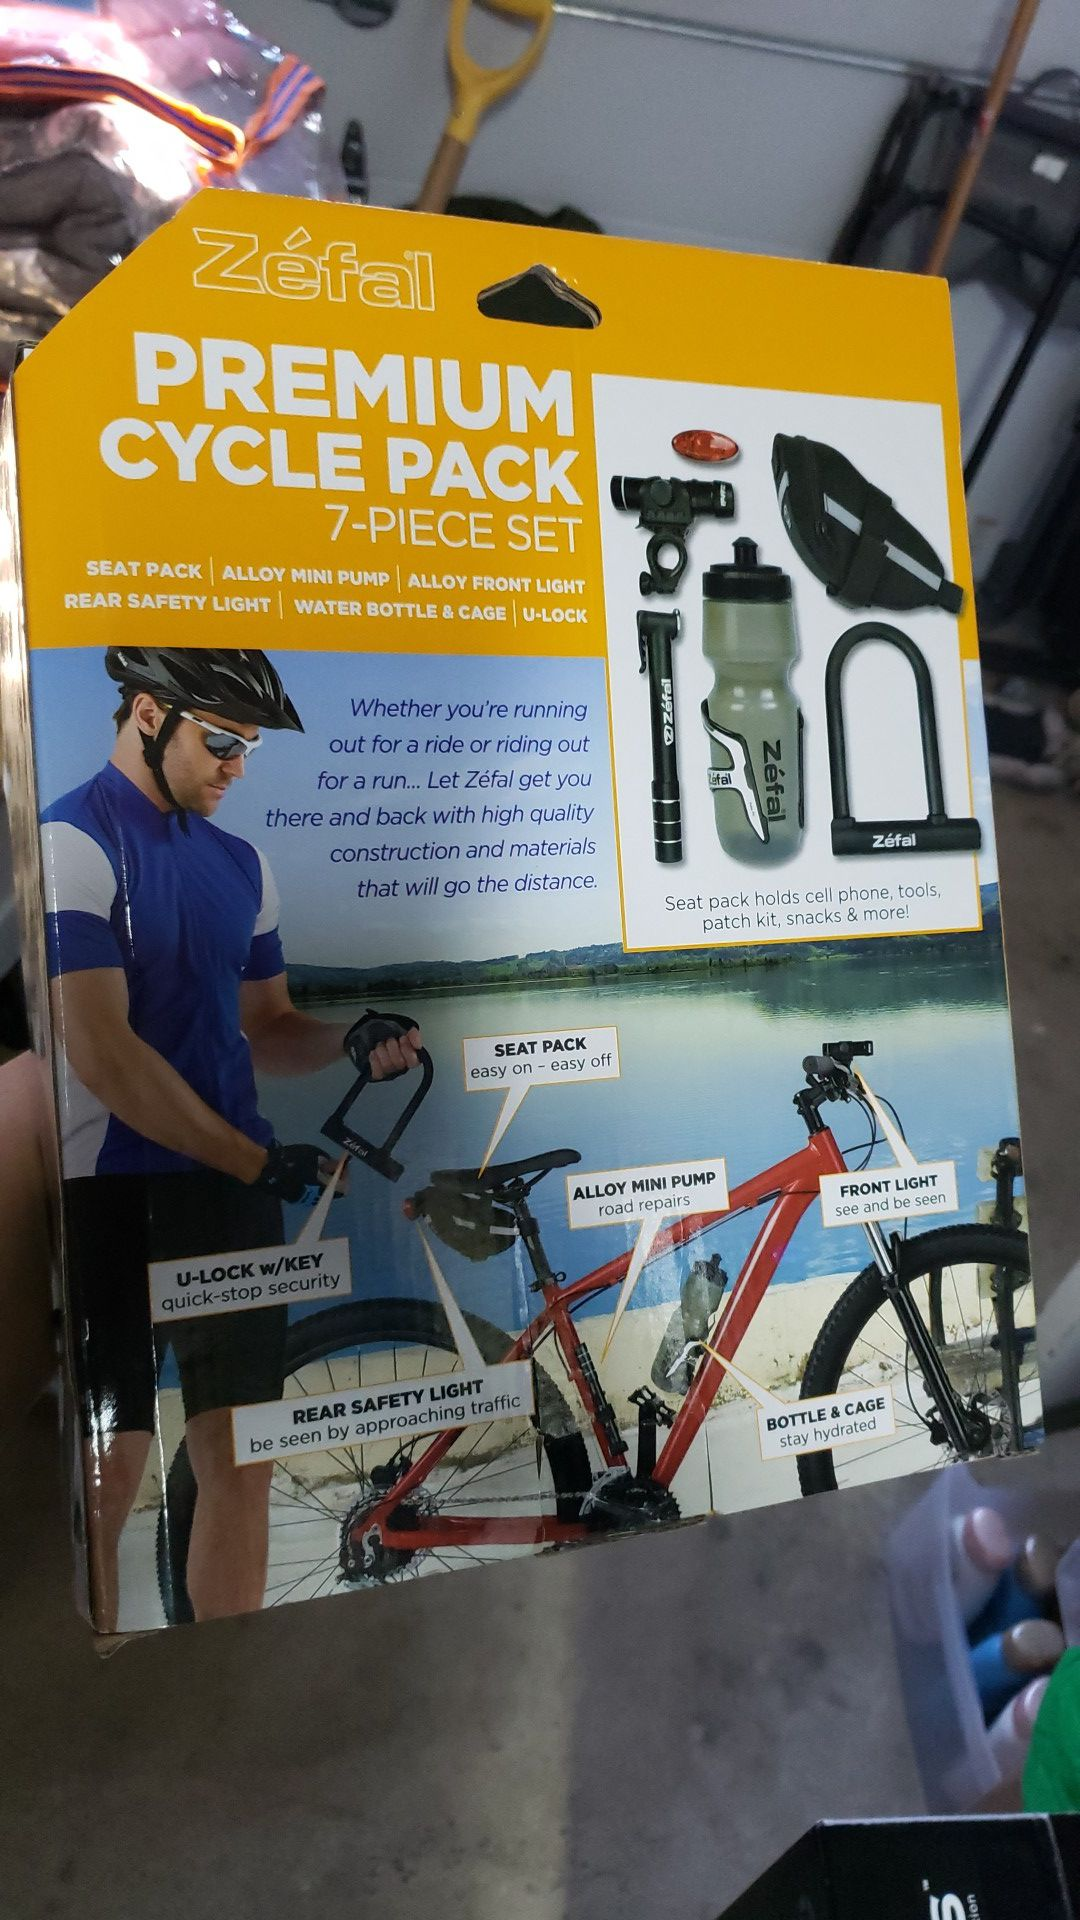 Cycle pack